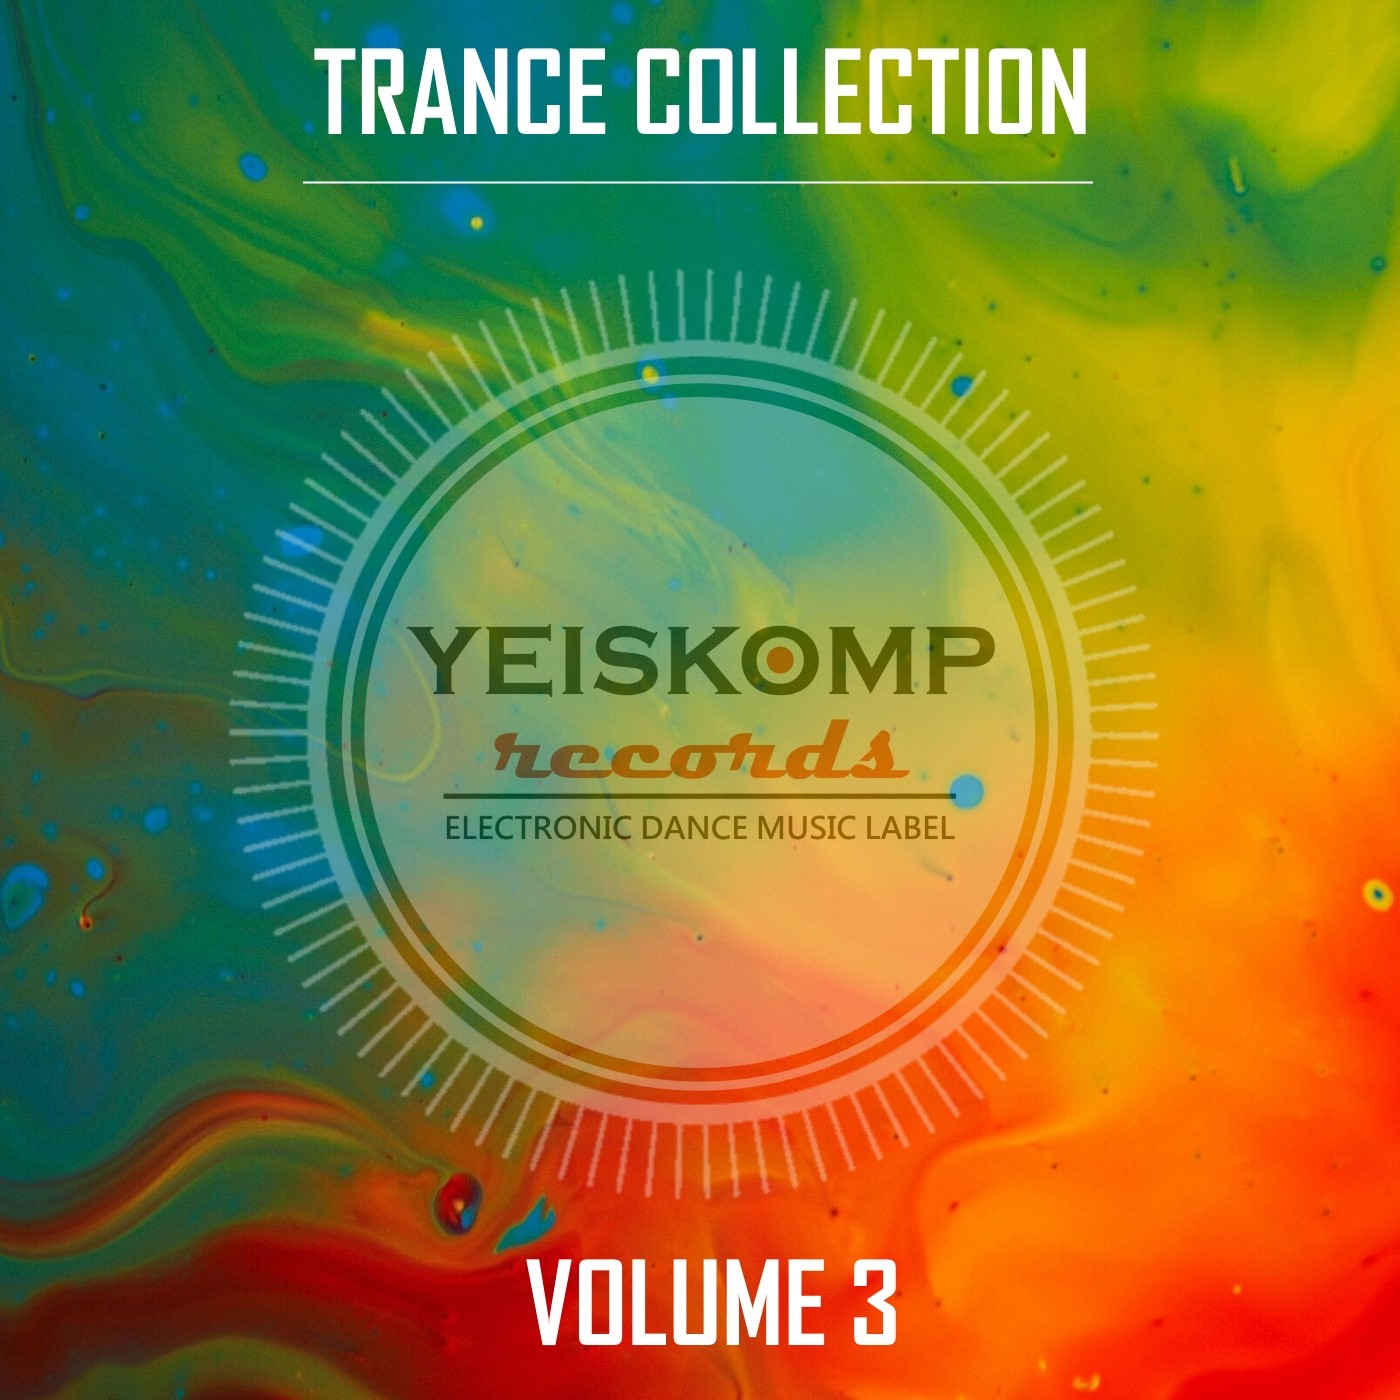 Trance Collection by YR, Vol. 3